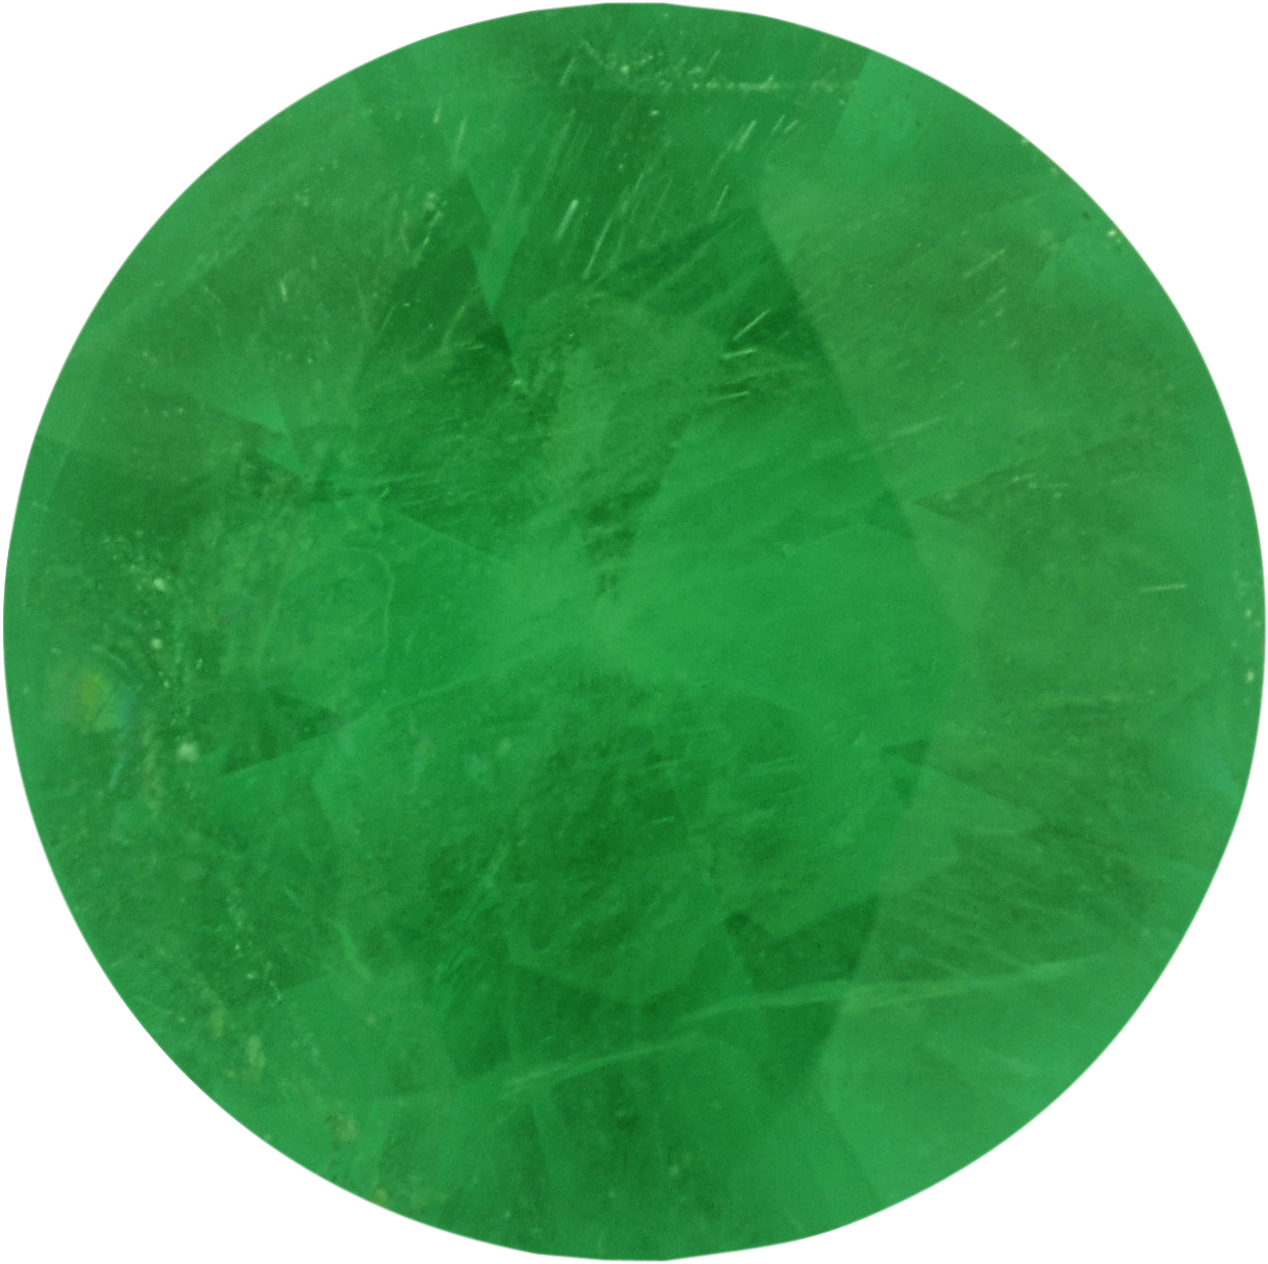 6.04 mm, Round Cut Genuine Emerald Gem, 0.57 carats